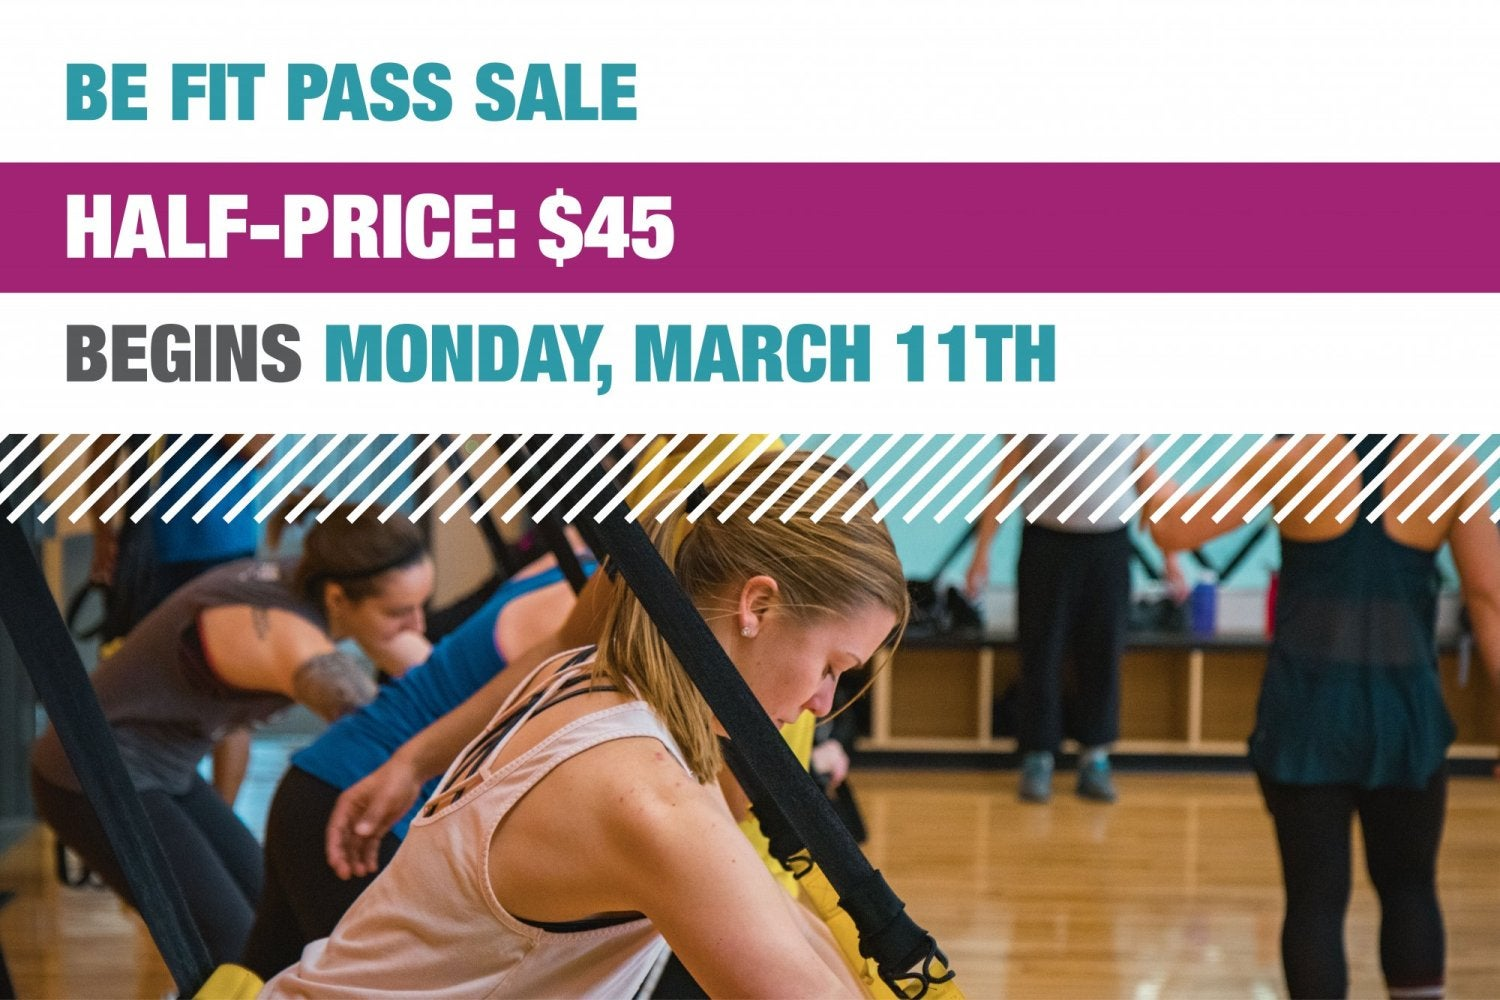 Be fit pass on sale